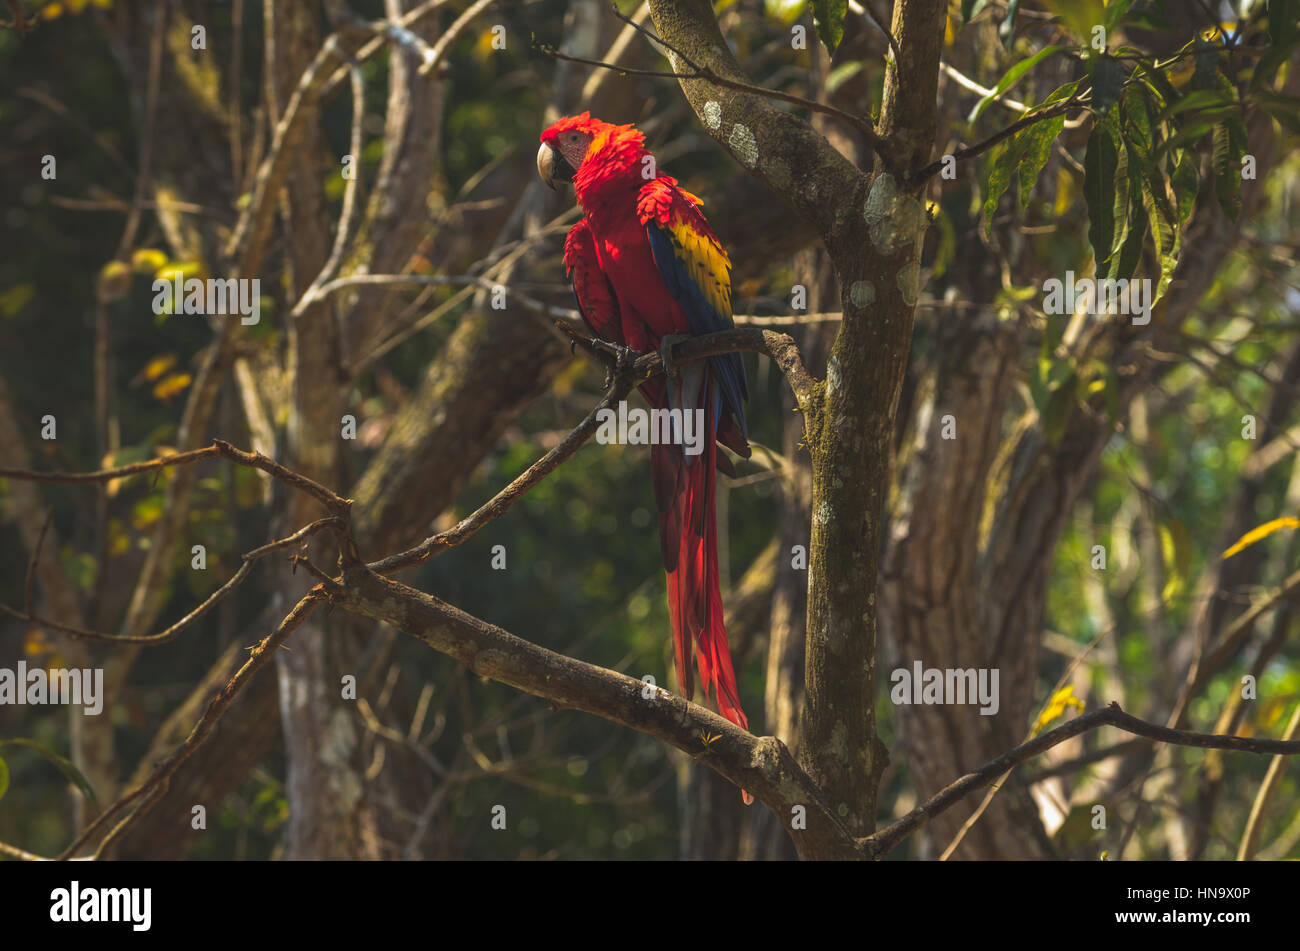 Perched Scarlet macaw - Stock Image